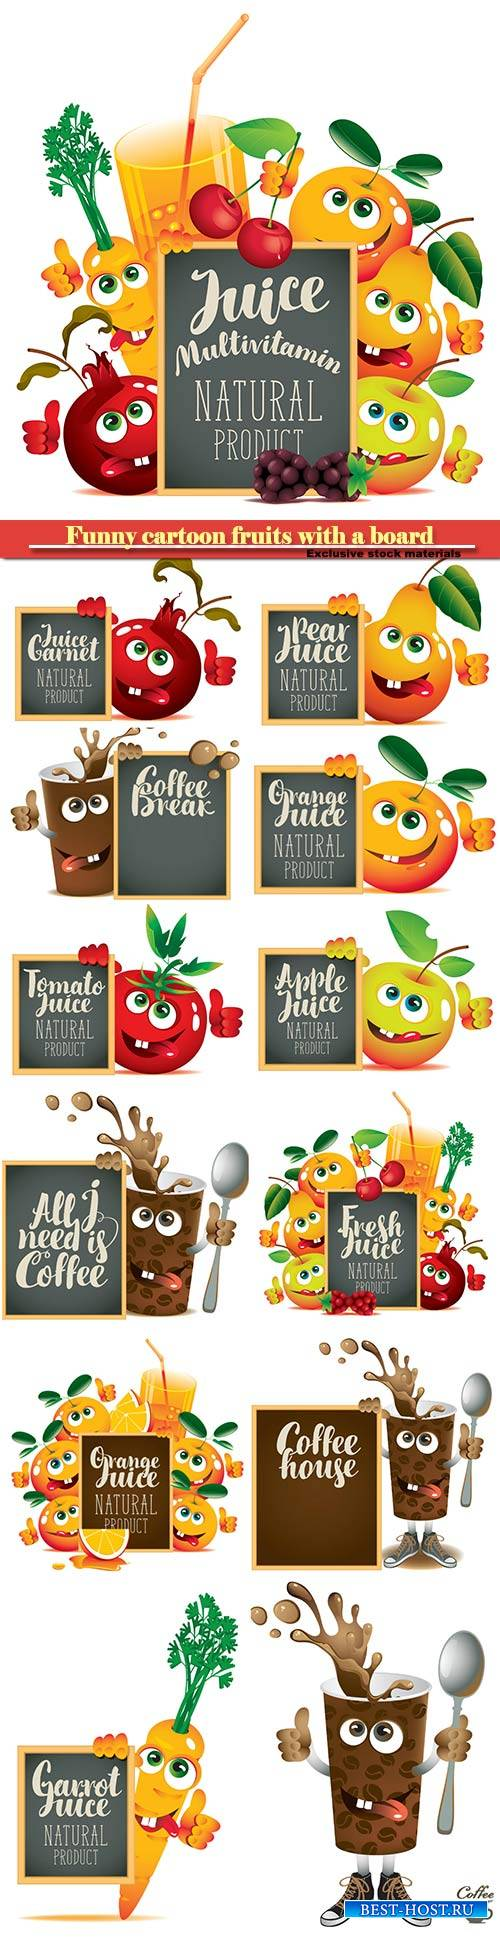 Funny cartoon fruits with a board, coffee and juices